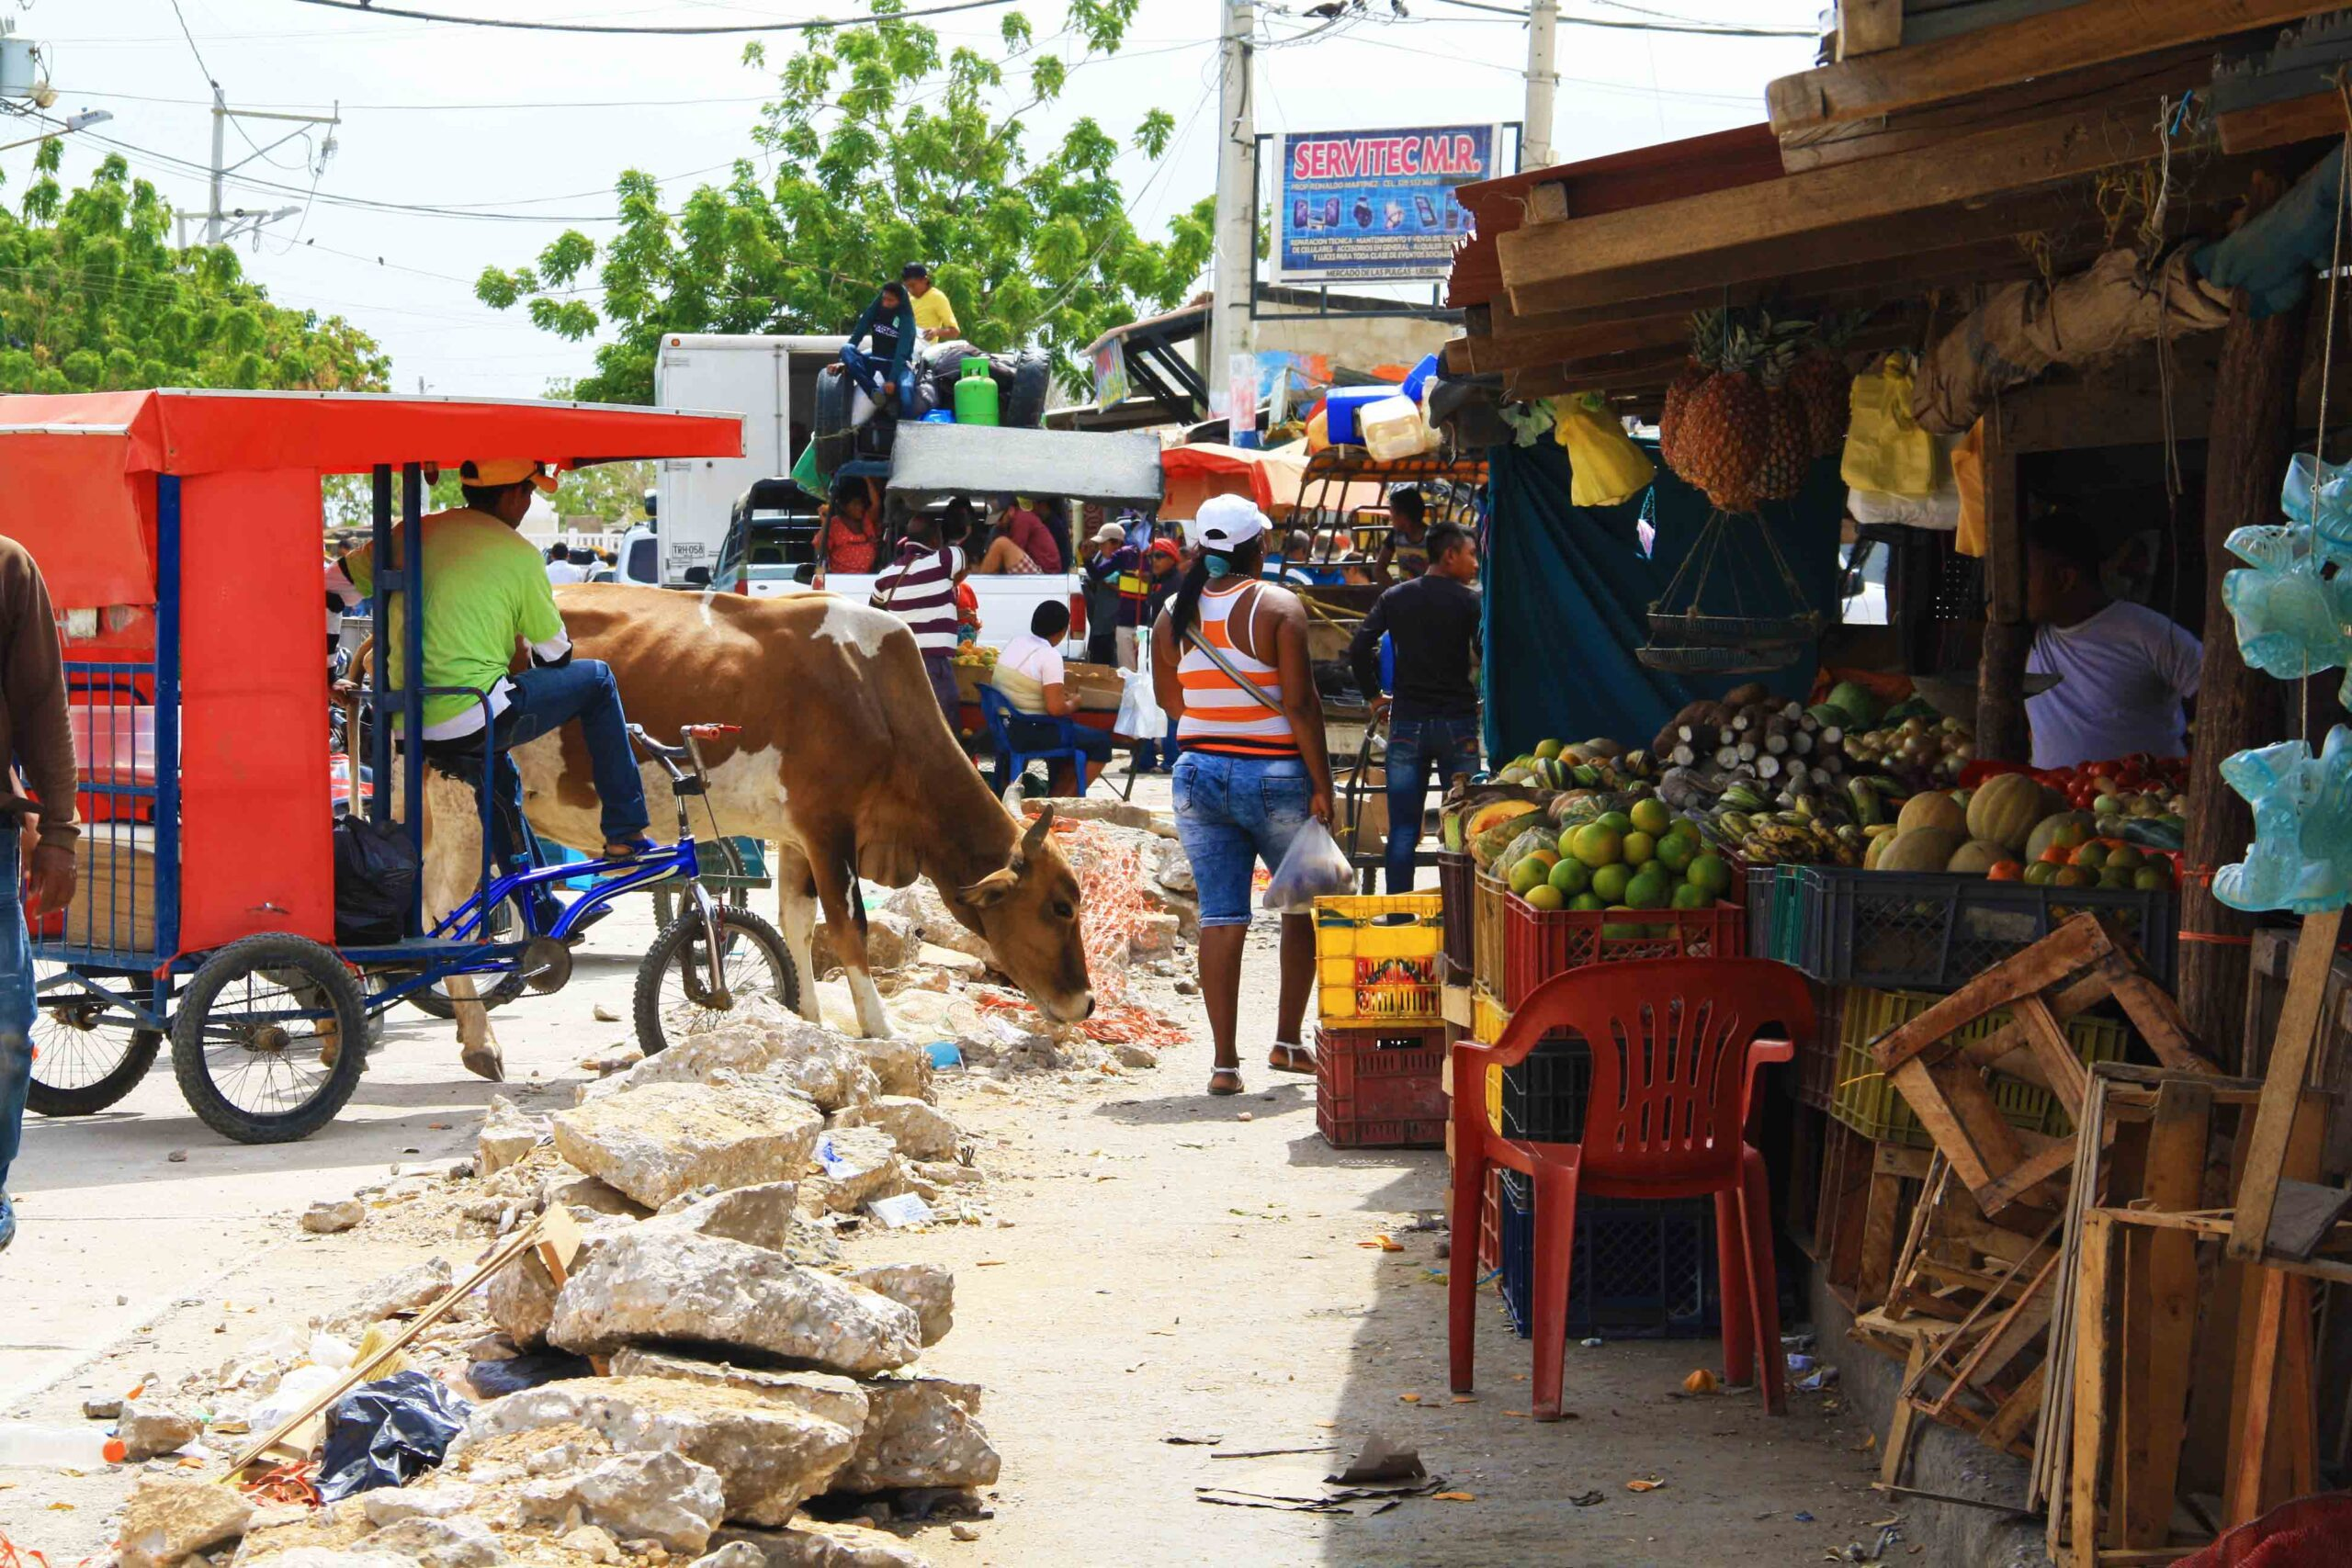 Chaos at the market of Uribia